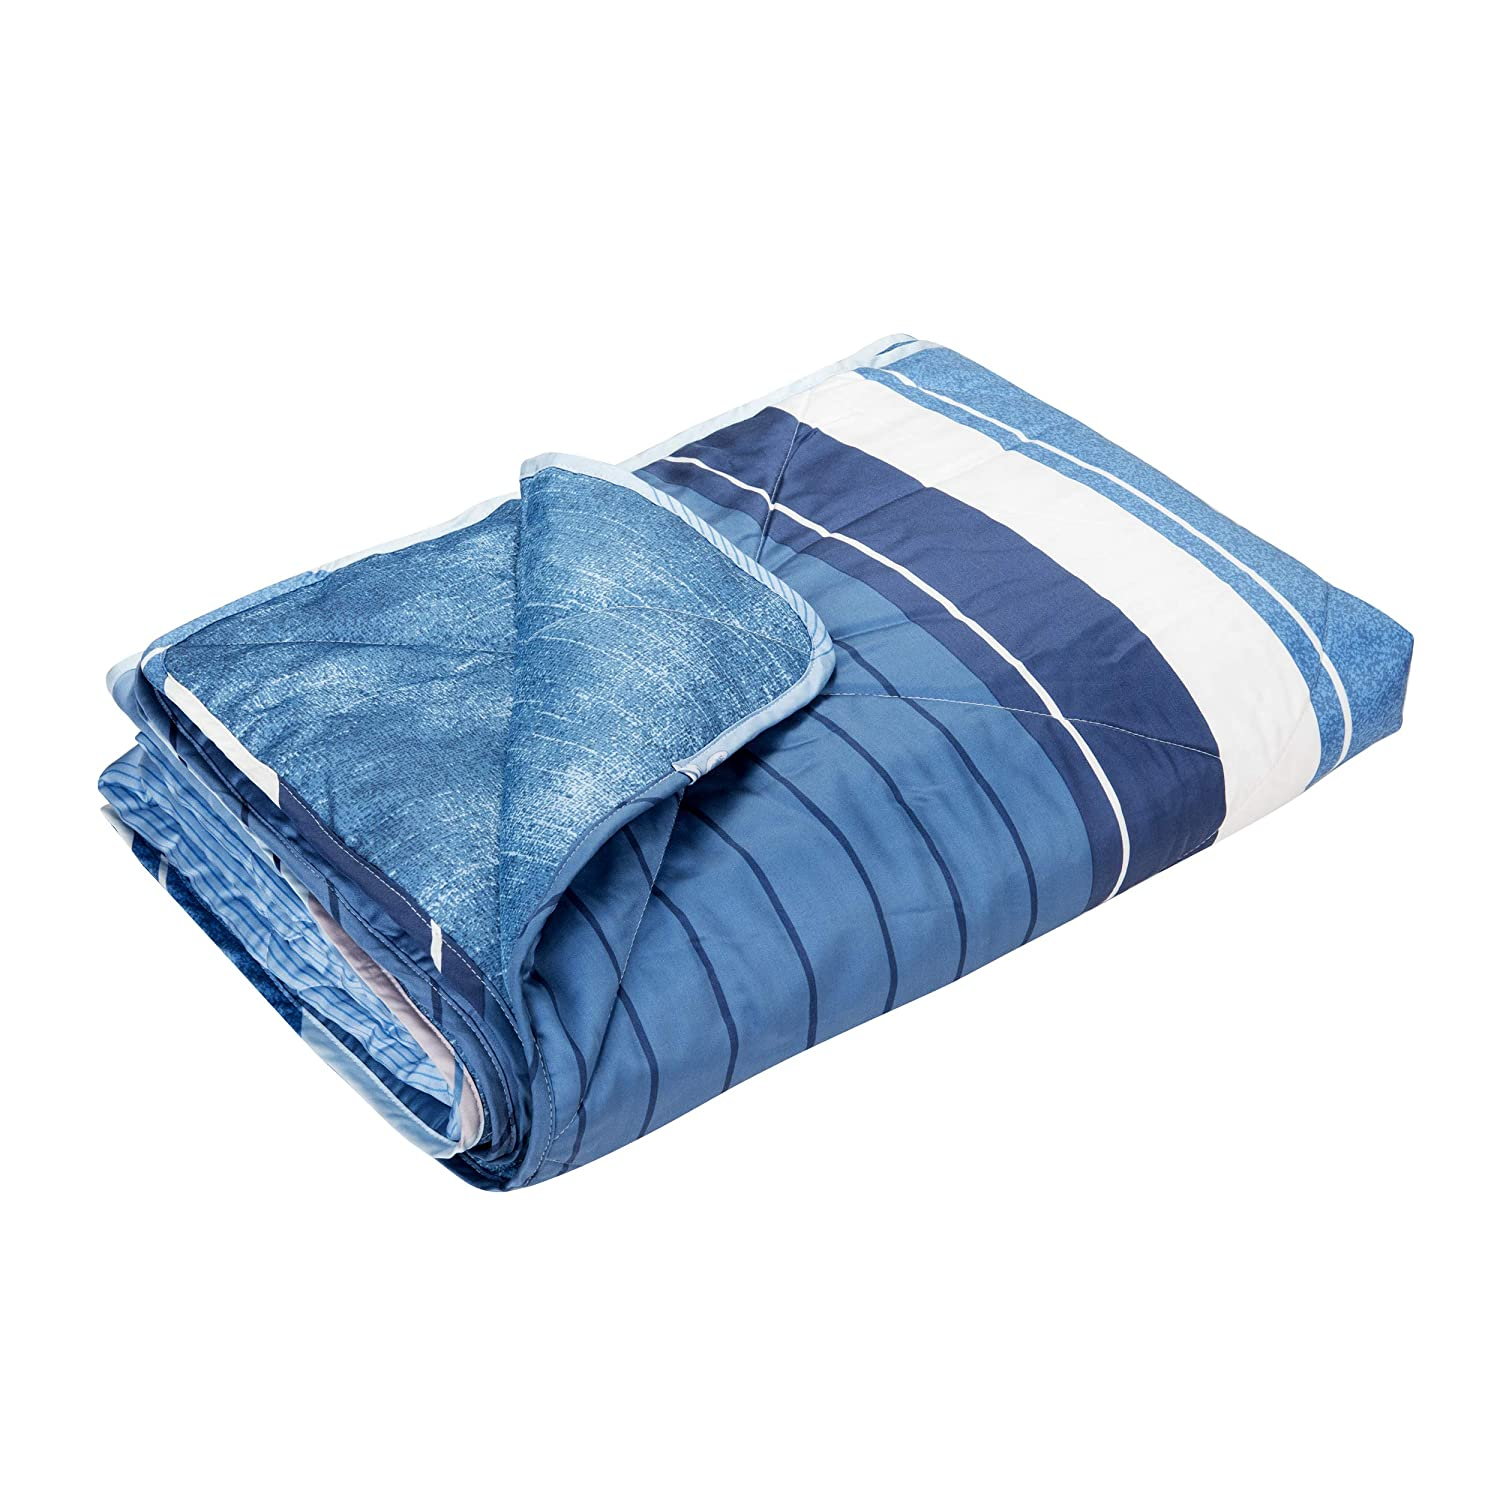 EULEVEN Cooling Quilt Blanket | Luxurious Soft CoolPro Technology and Tencel fibric| Cool Blanket for Night Sweats | Cool Bedding | Lightweight Blanket for Summer | Nicely Bag for Traveler | Full